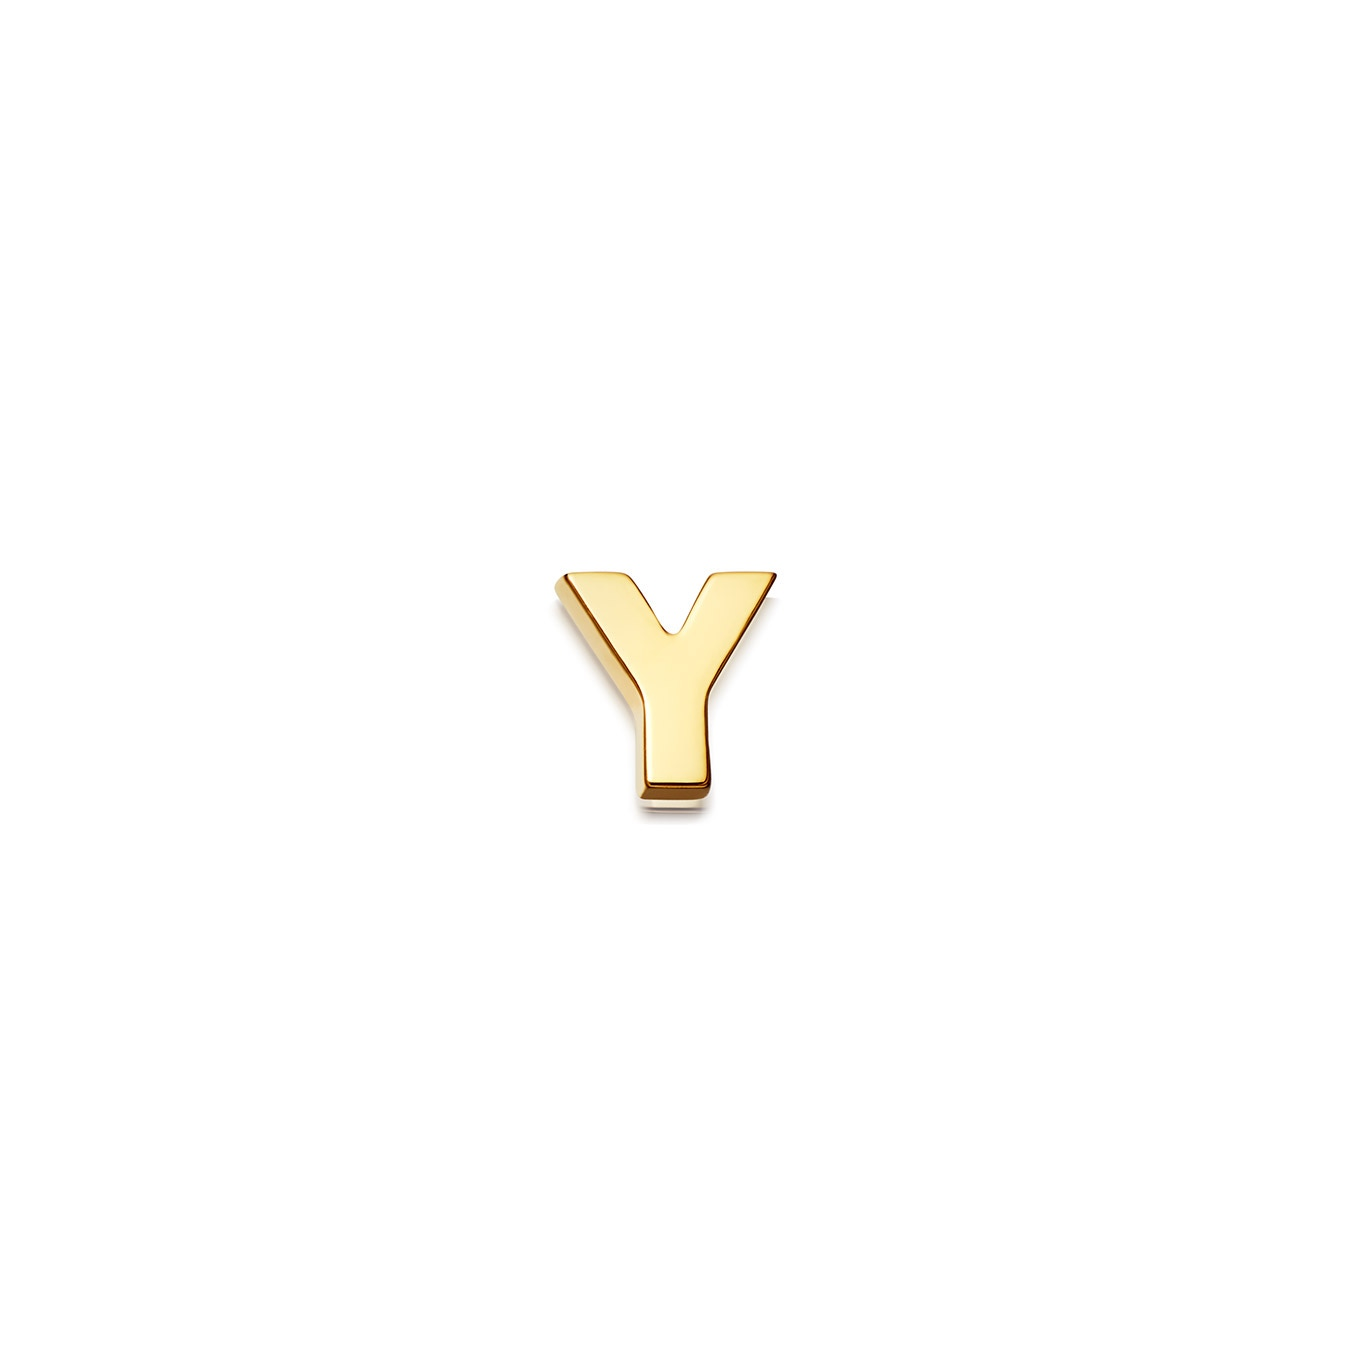 Initial 'Y' Biography Pin